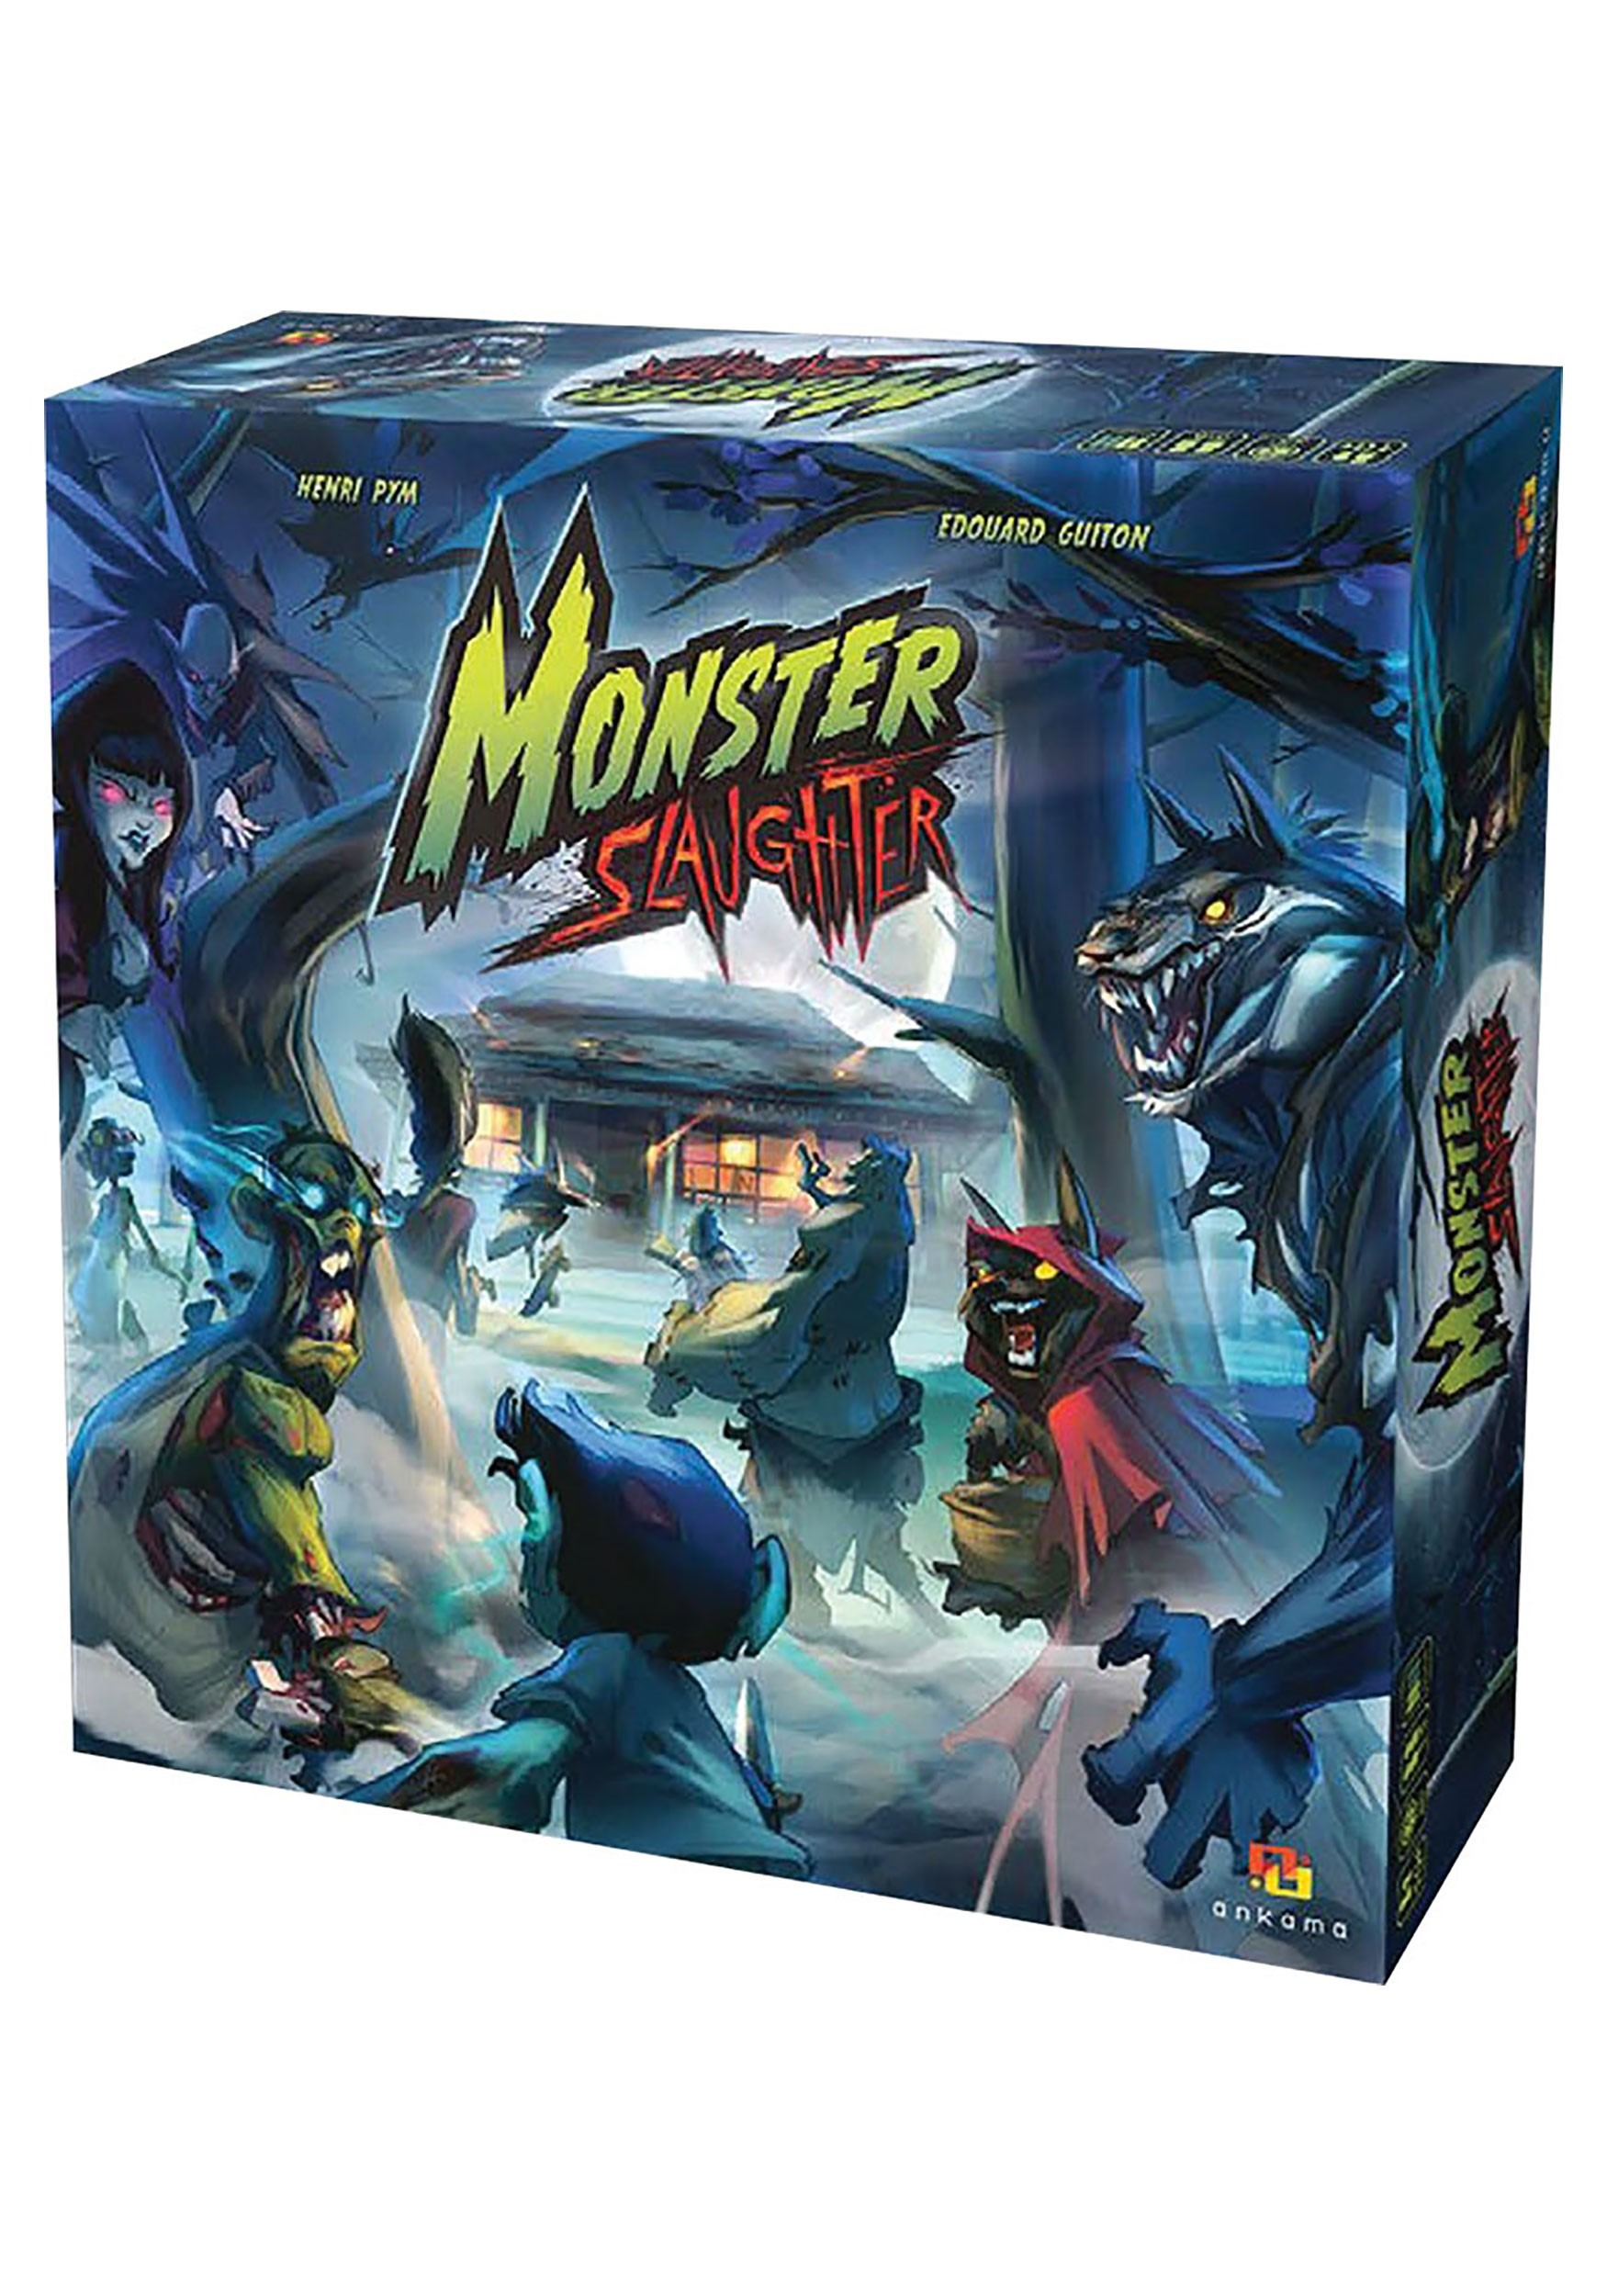 The_Monster_Slaughter_Board_Game